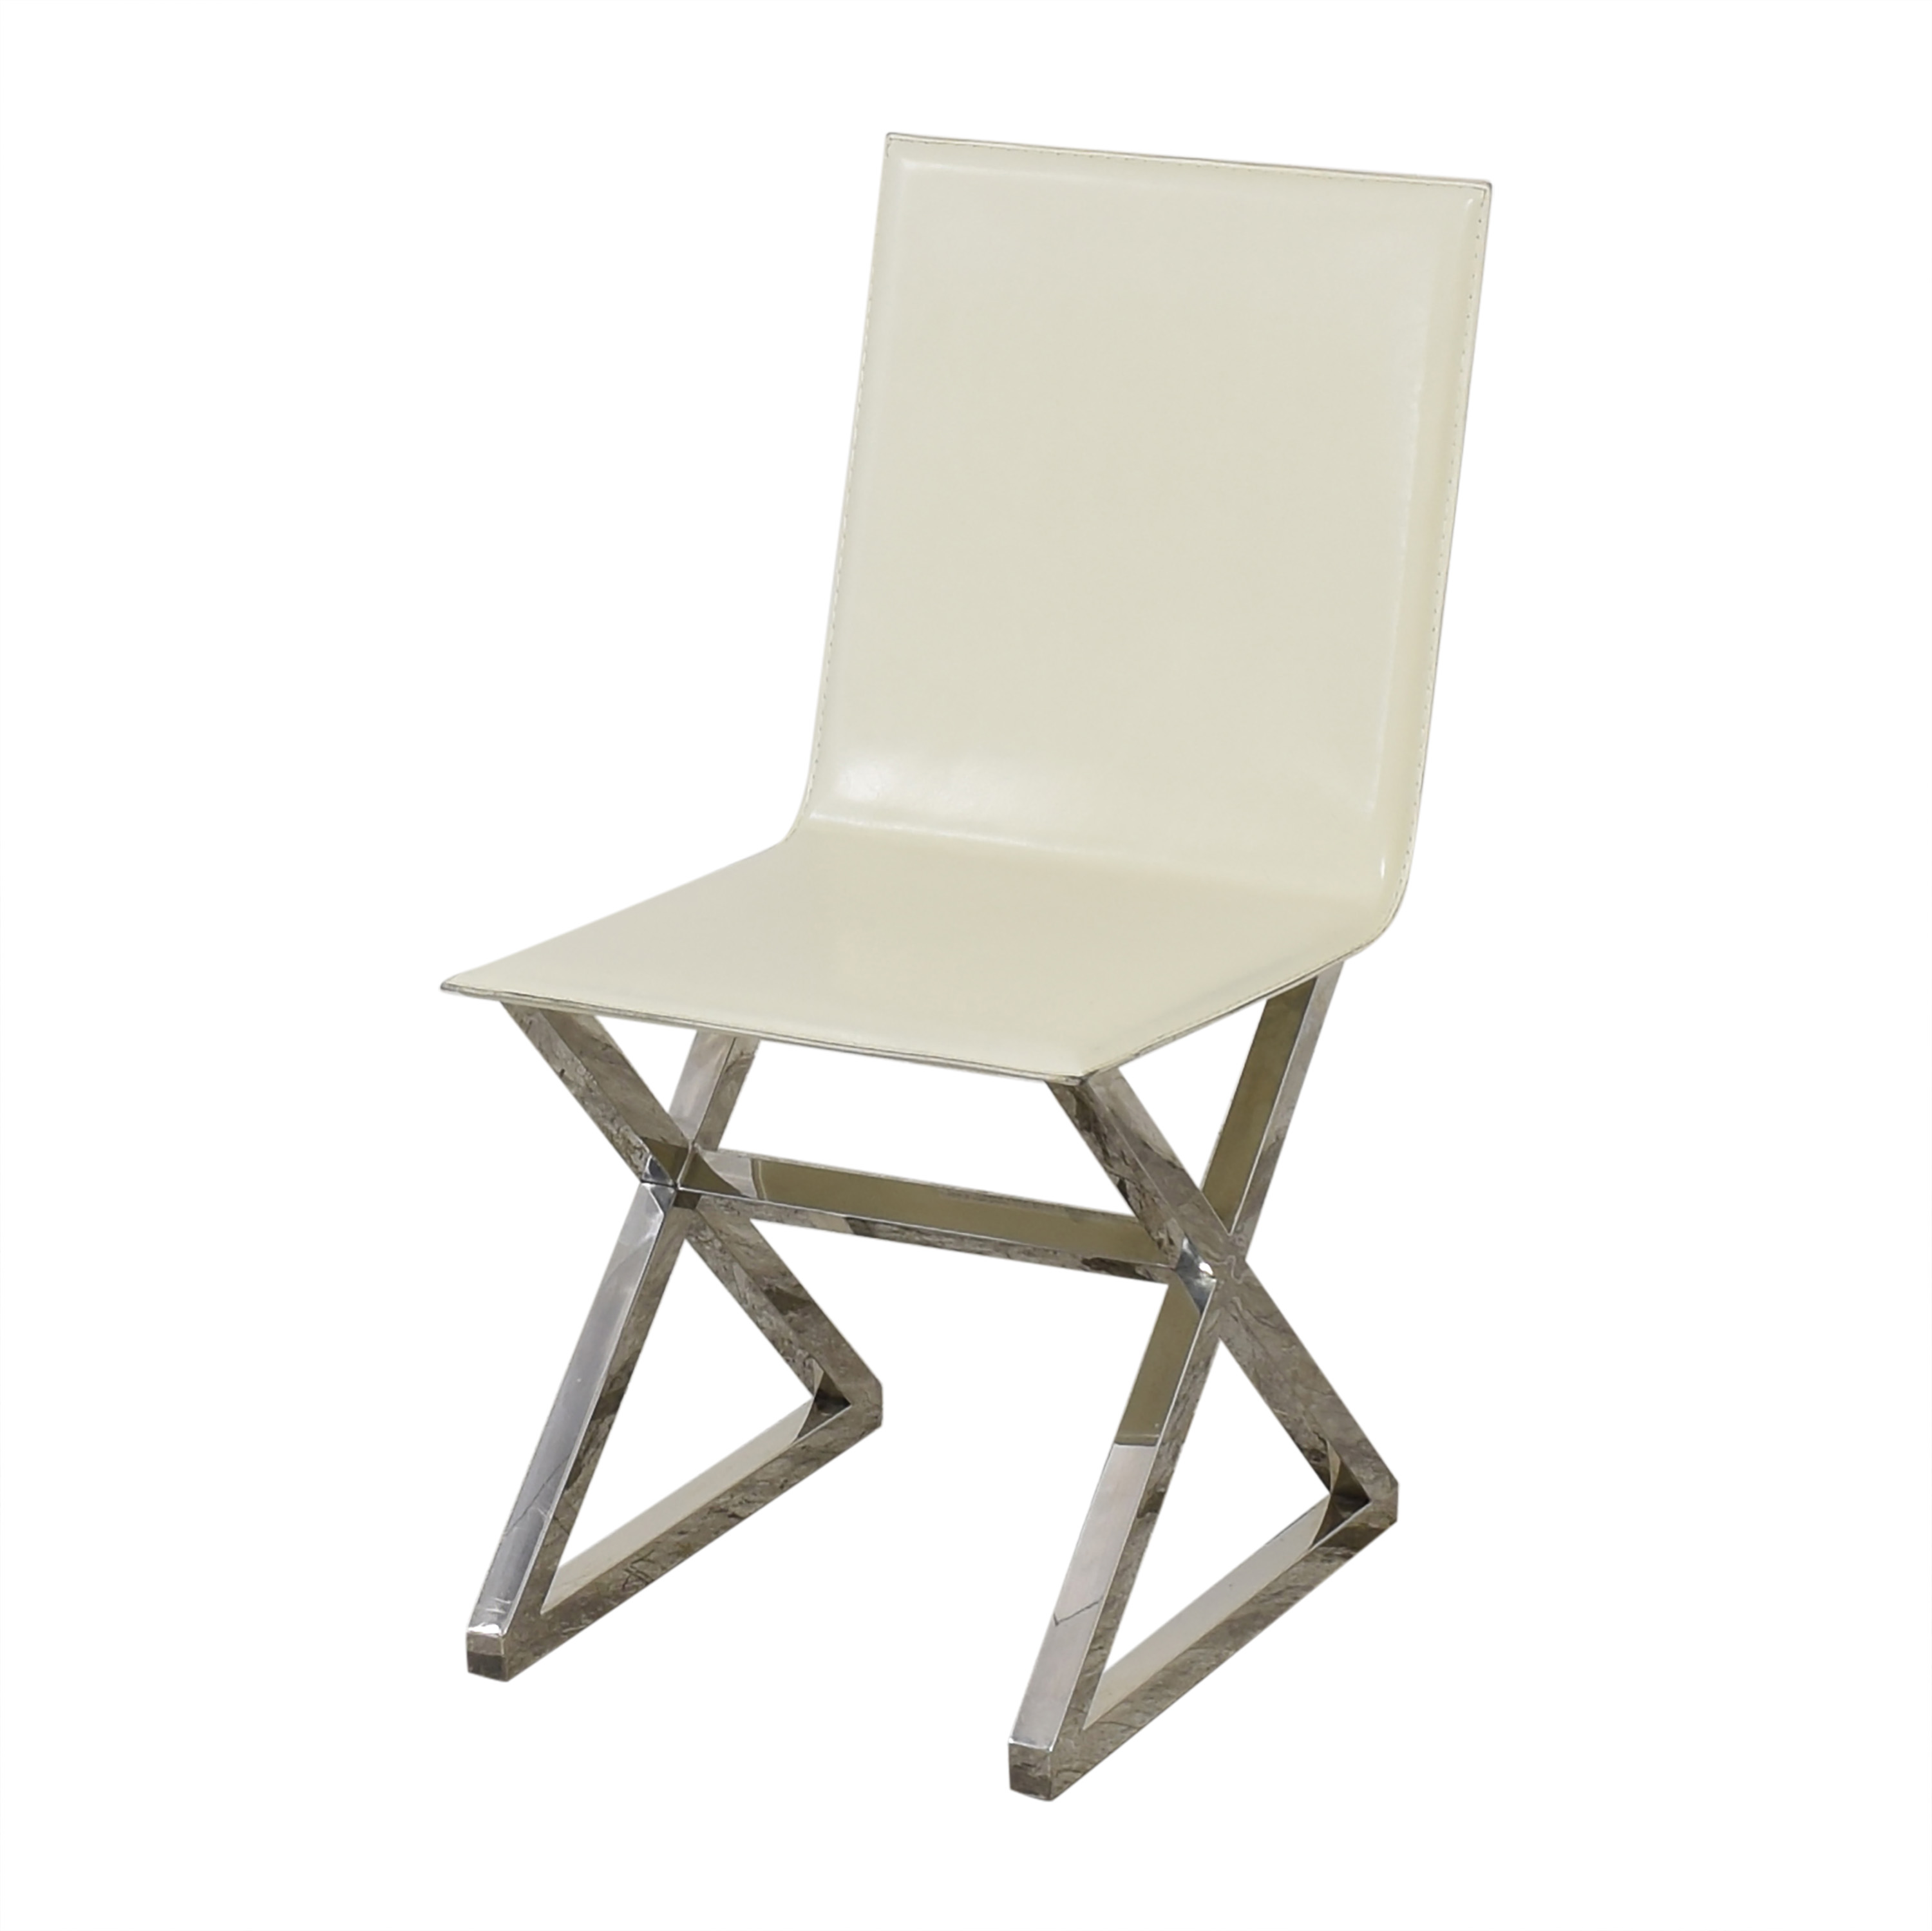 Z Gallerie Z Gallerie Axis Dining Chairs price